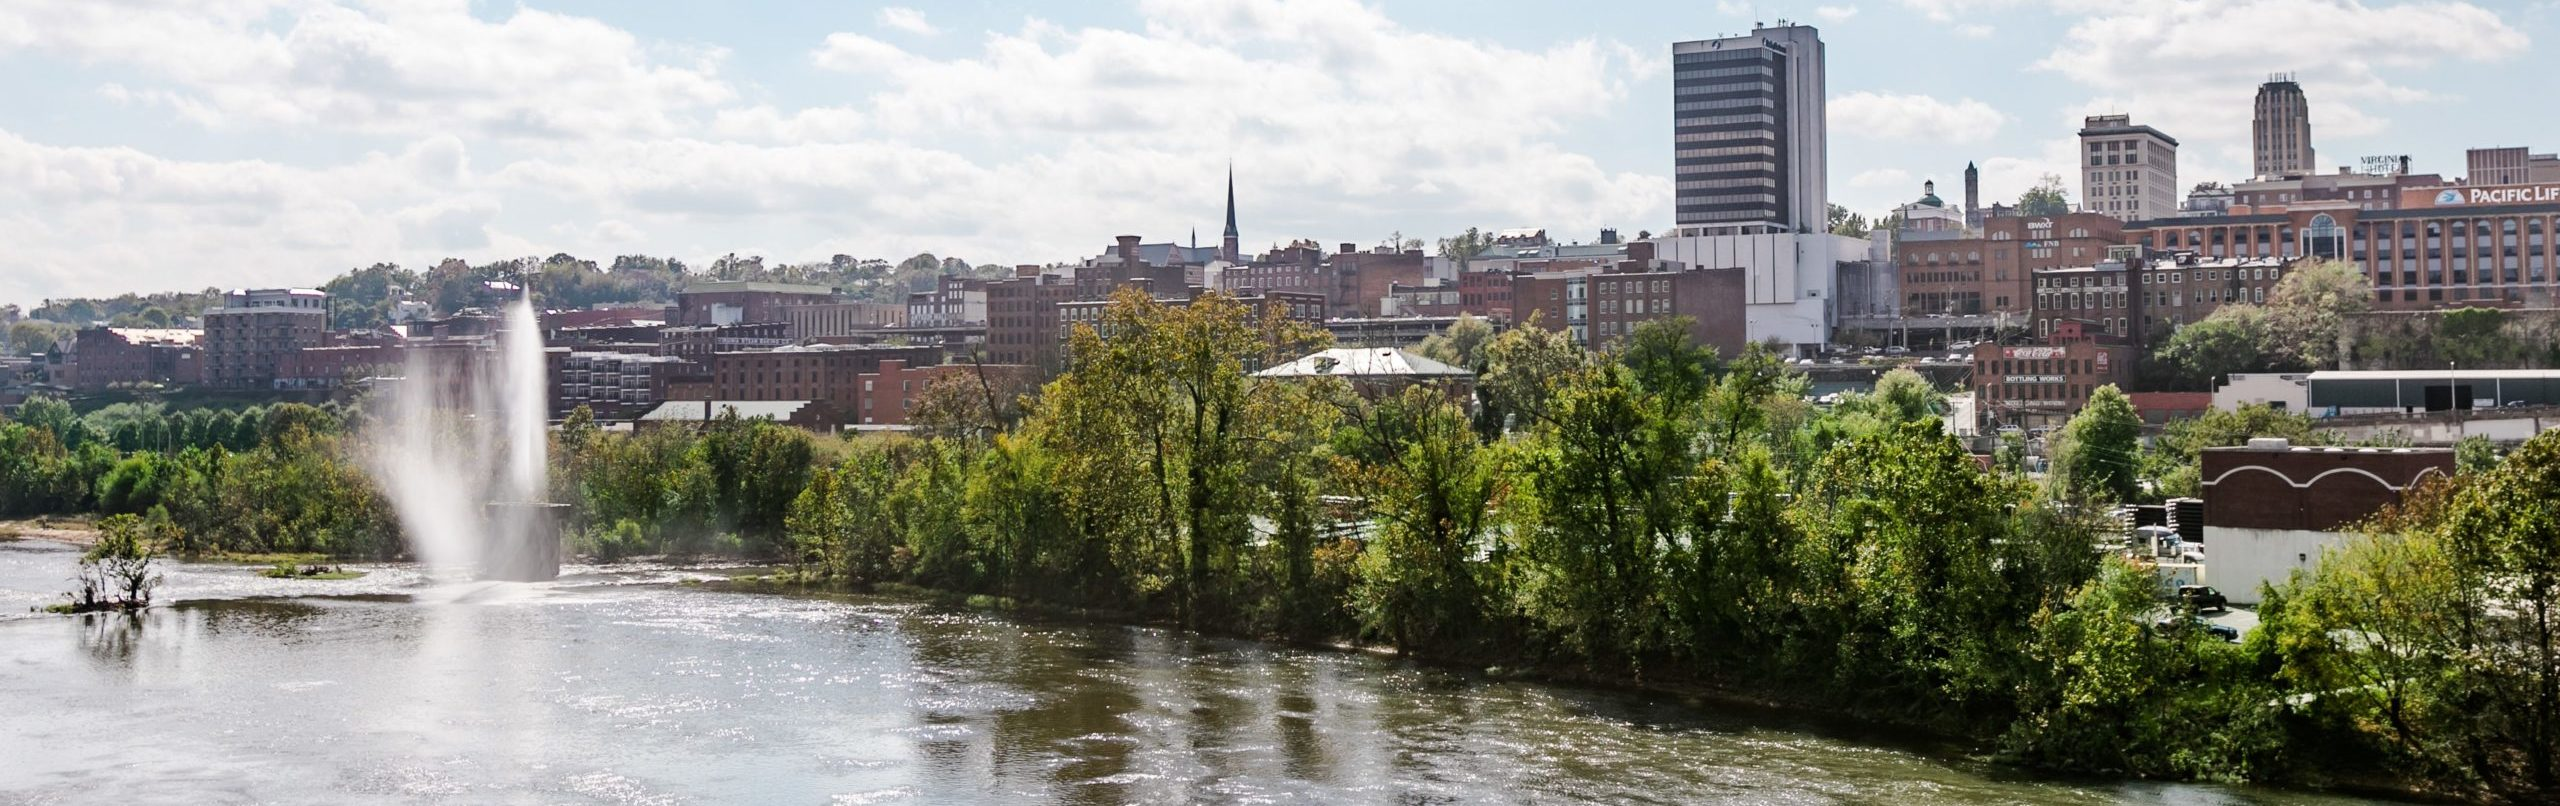 A picture of downtown Lynchburg during the day